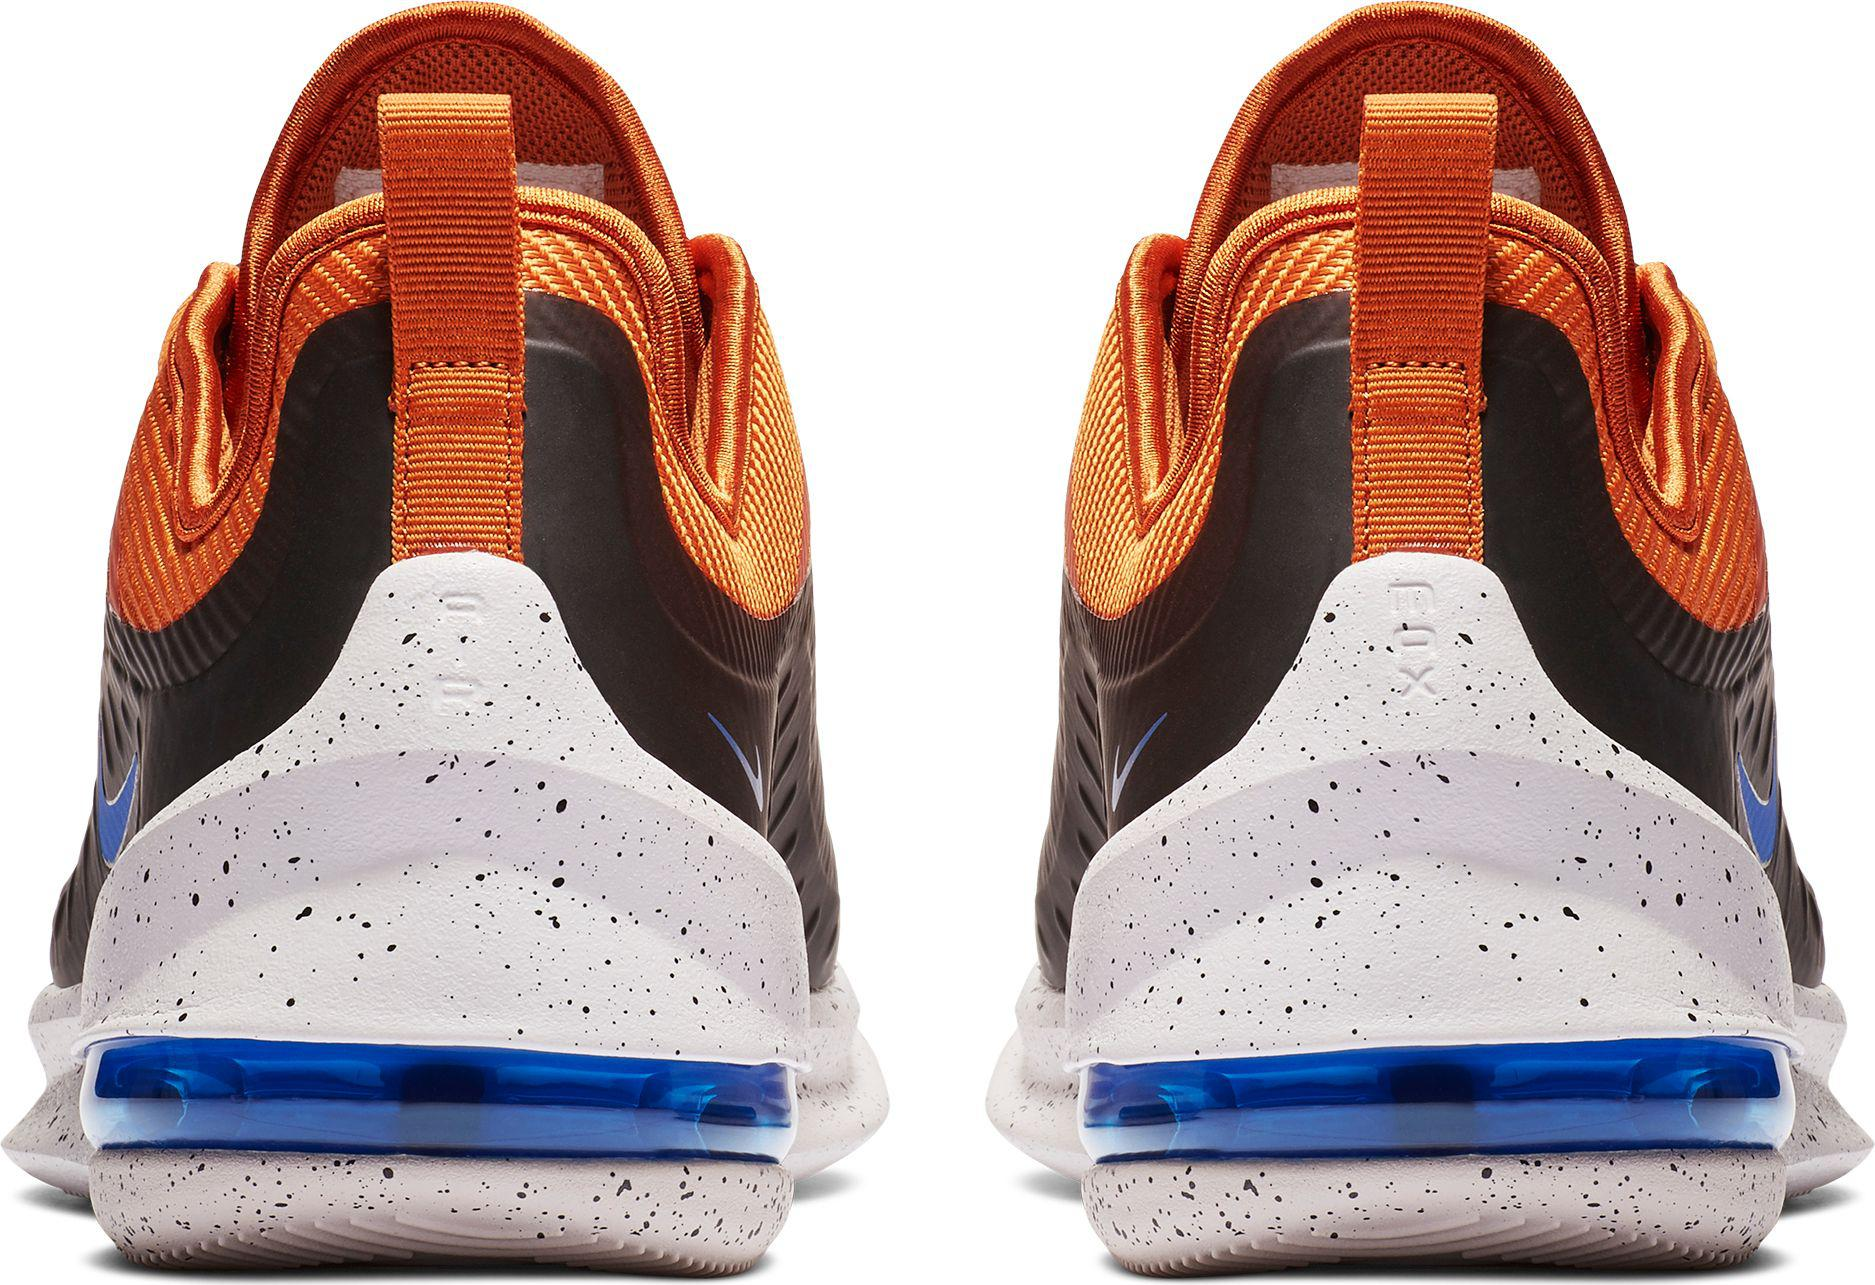 Premium Men Orange Axis Max Air Shoes Nike For HED9I2